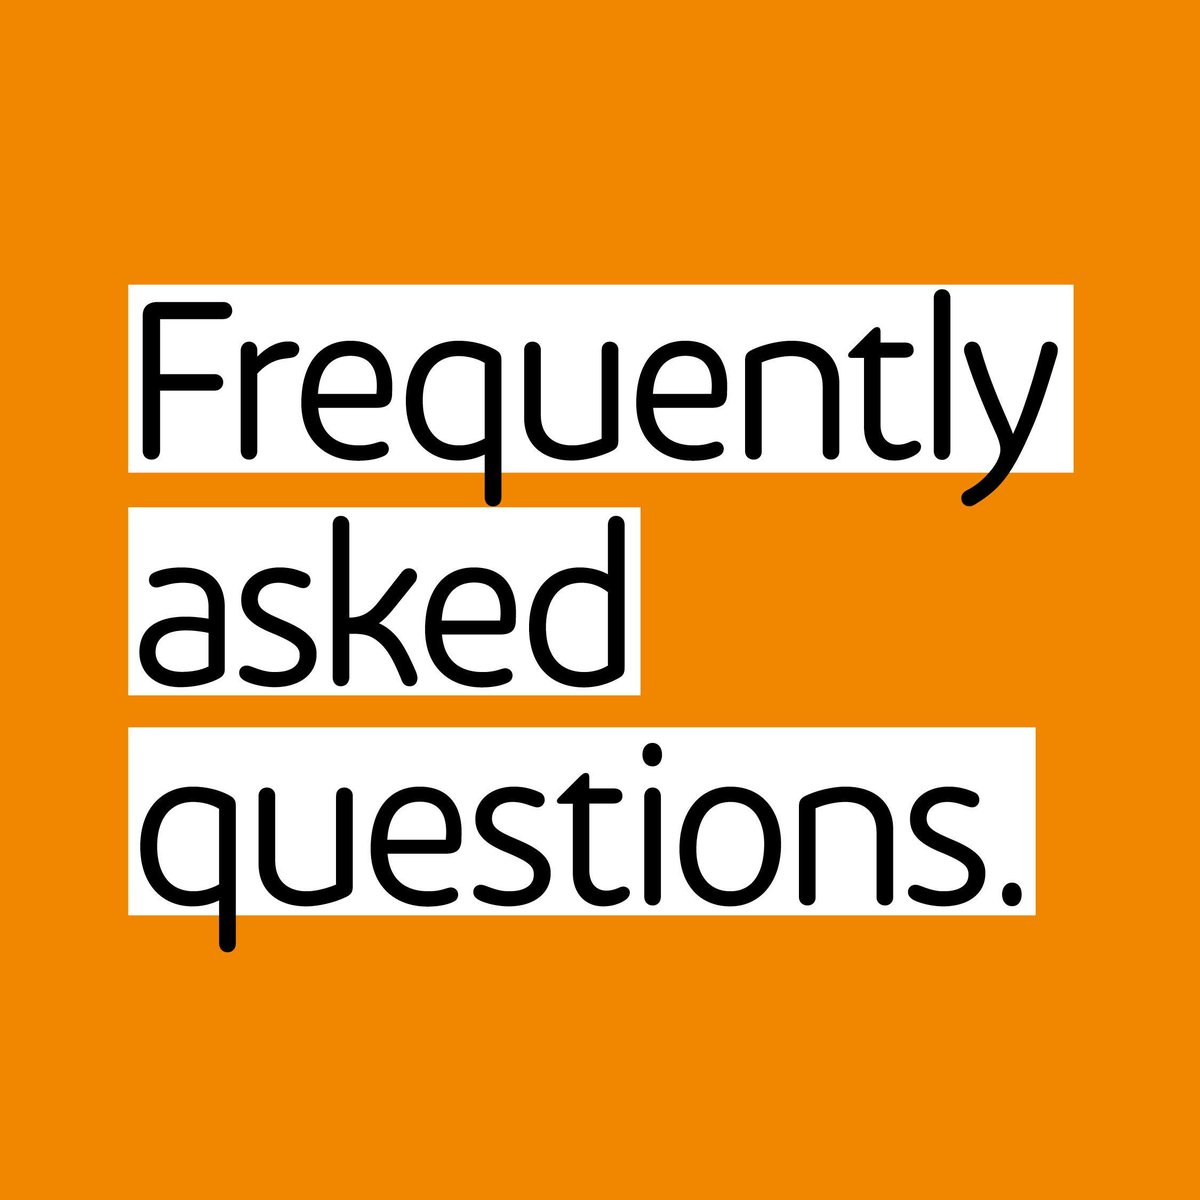 We understand there may be lots to think about if you're planning a visit, so we've pulled together a handy list of questions and answers on our website: https://t.co/aBLeGB6Vfd https://t.co/pMJXKbA3di